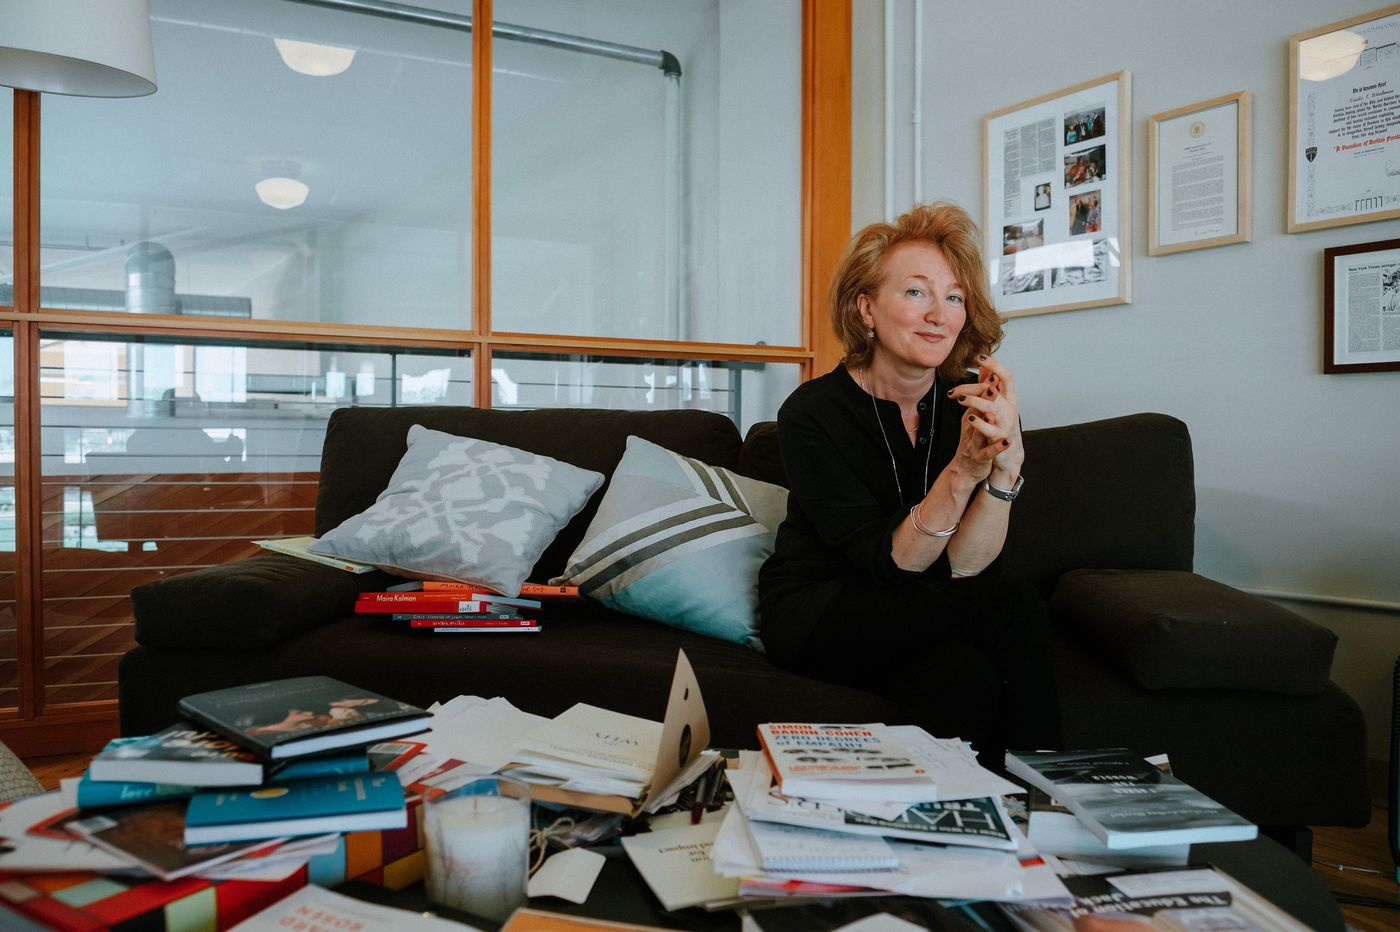 Krista Tippett transcends matters of faith and religion